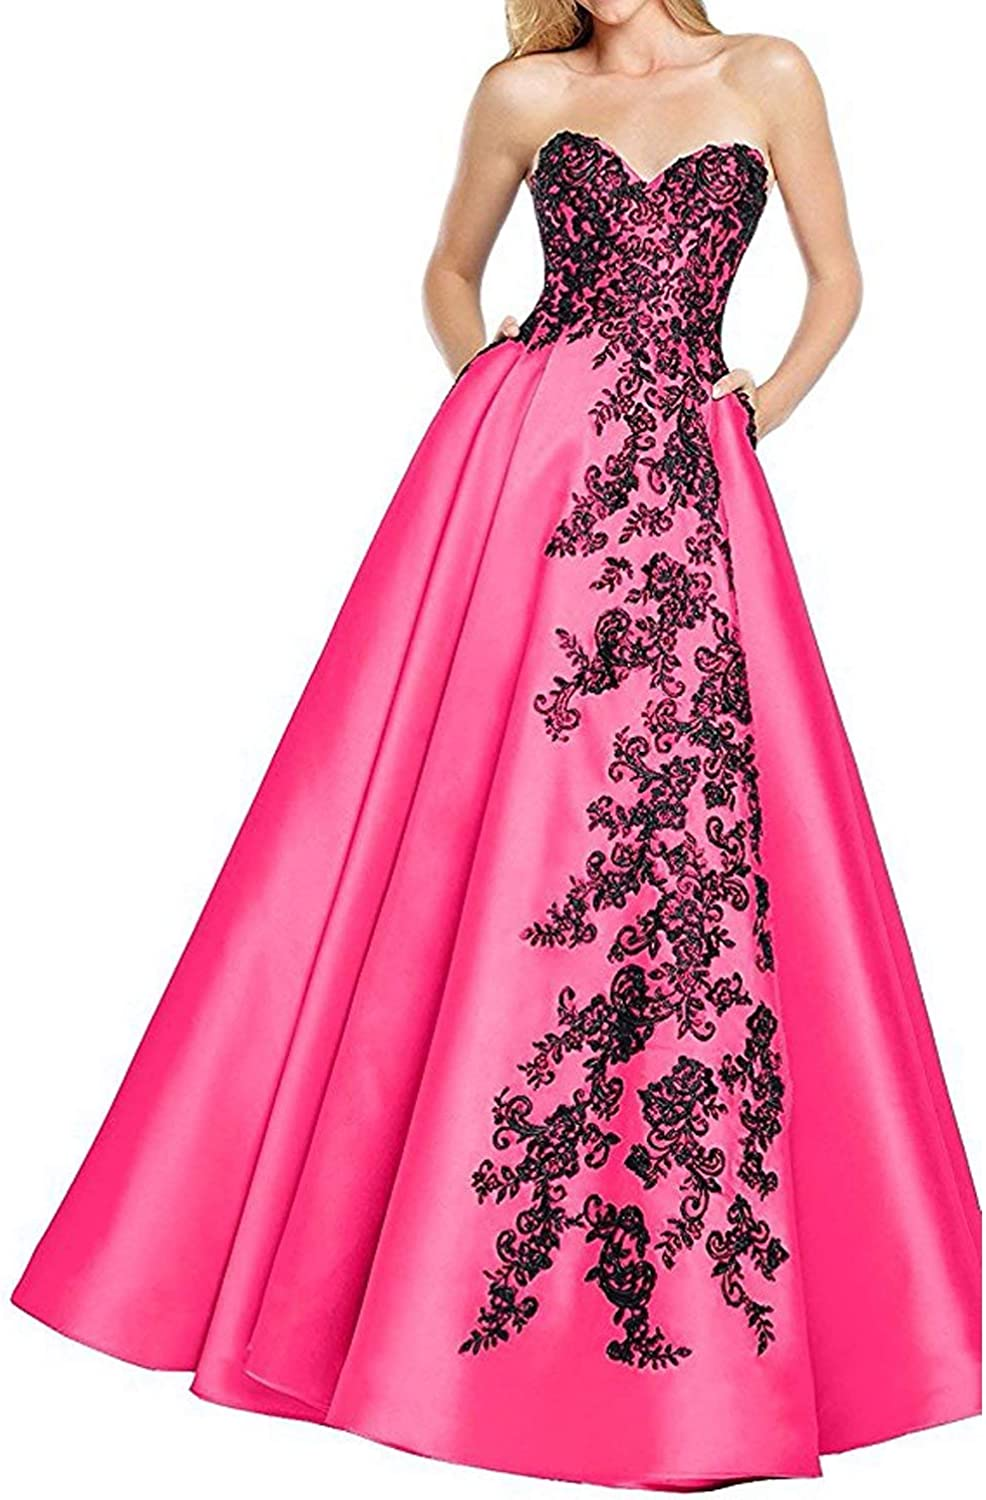 Liyuke Women's Appliqued Prom Dresses Long Lace Beaded Formal Evening Gowns